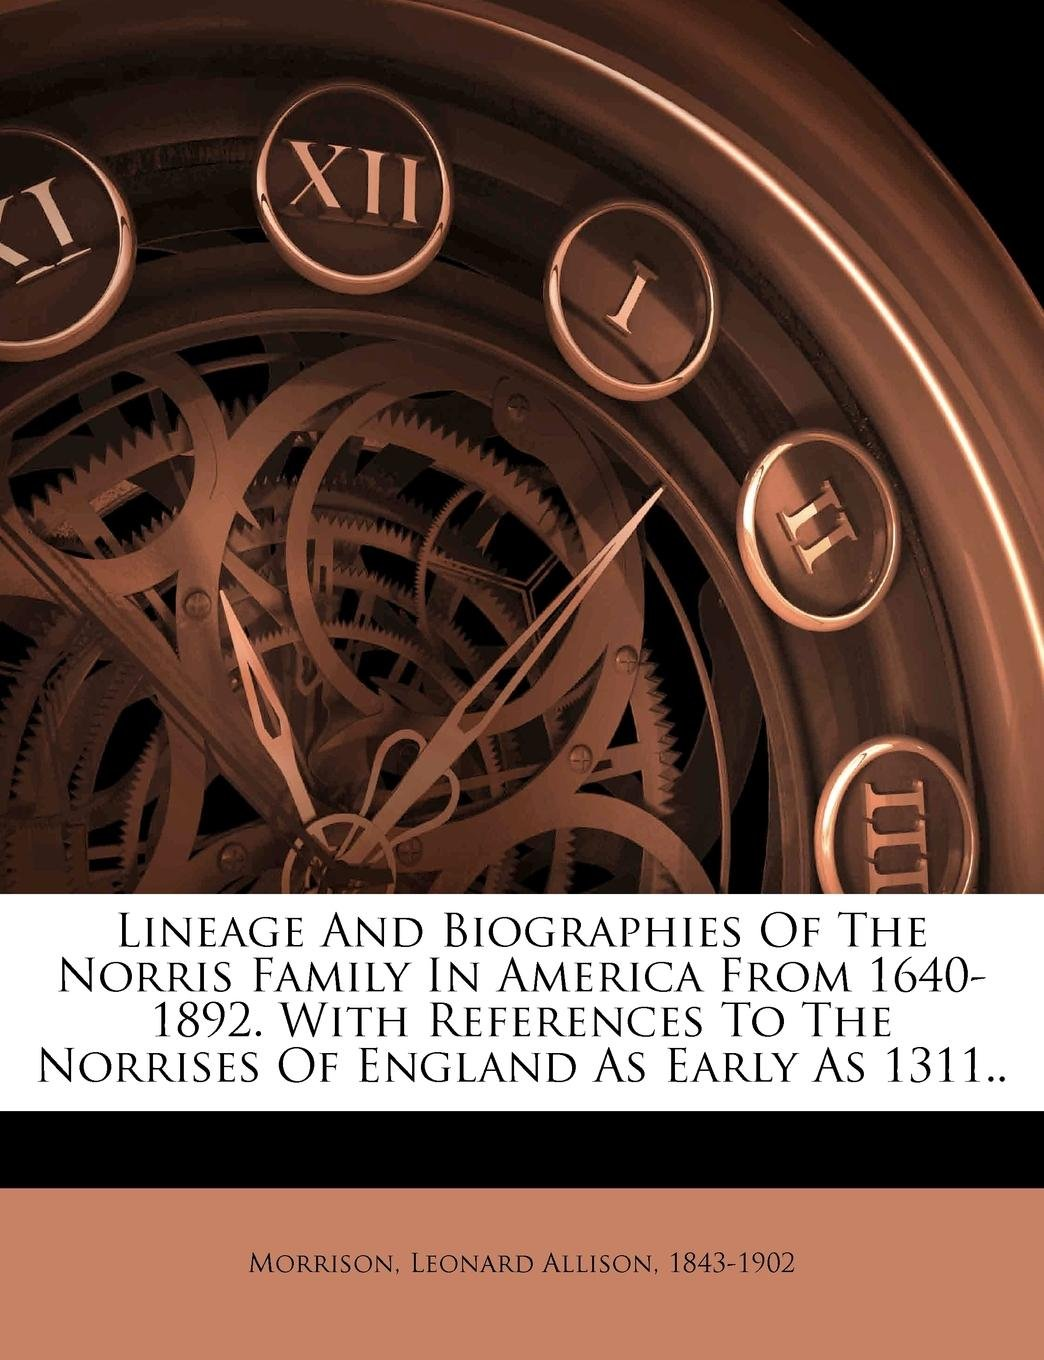 Download Lineage And Biographies Of The Norris Family In America From 1640-1892. With References To The Norrises Of England As Early As 1311. pdf